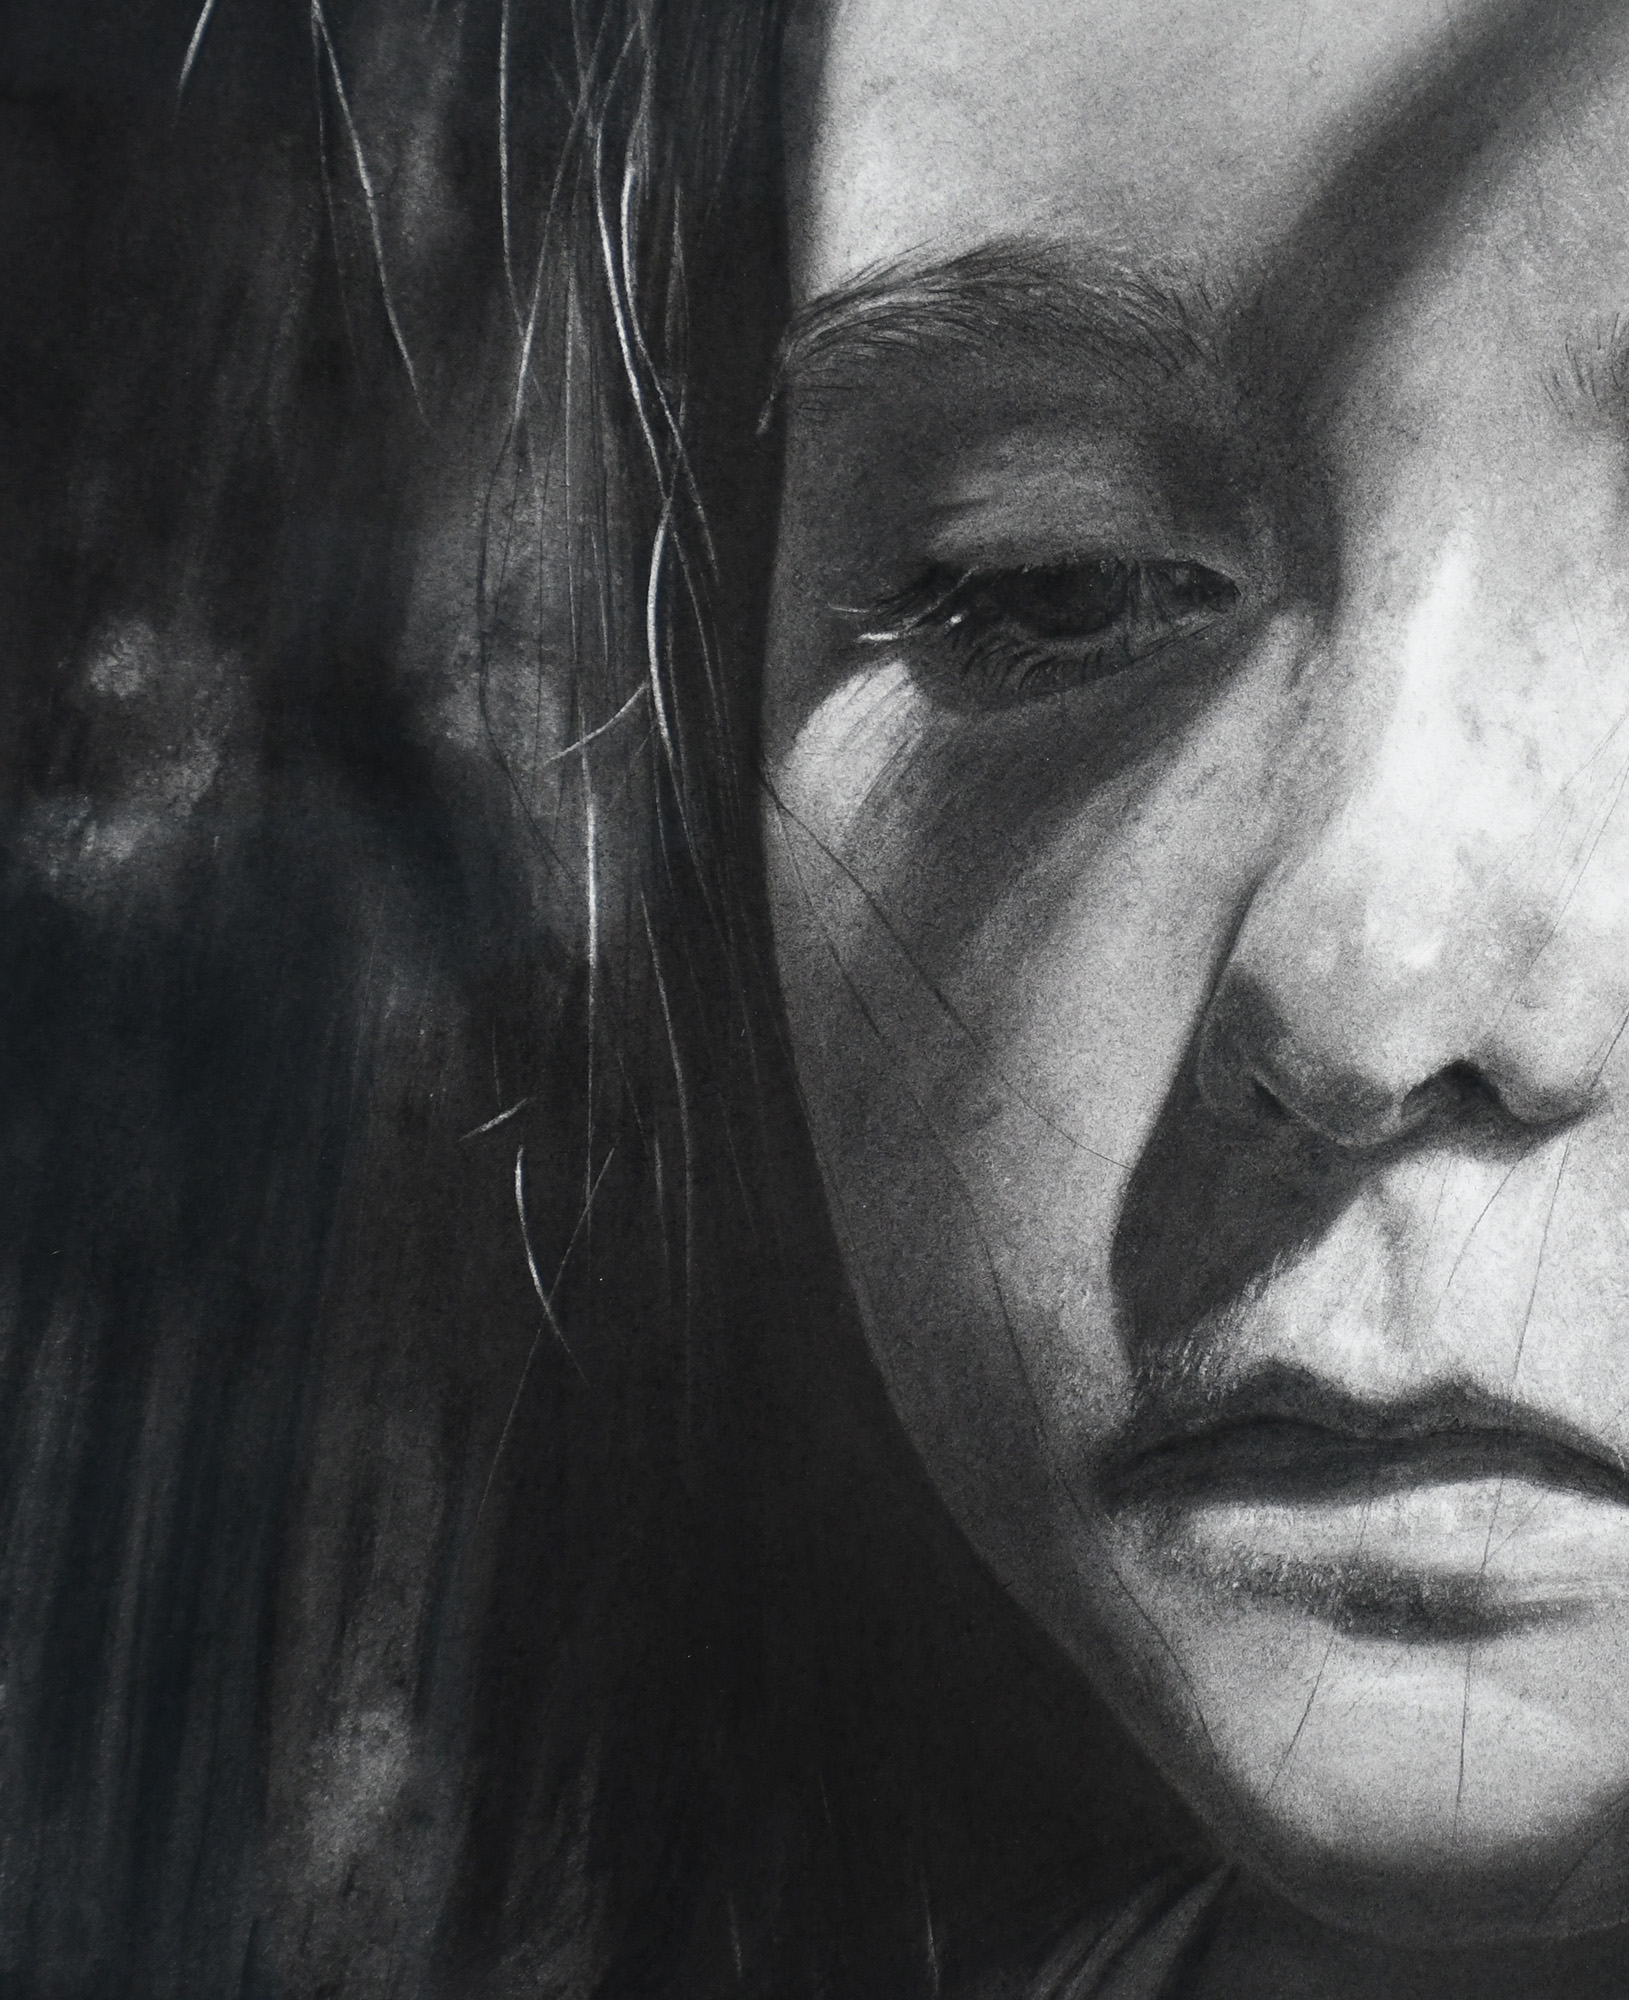 'In the Shadows 2' (detail)